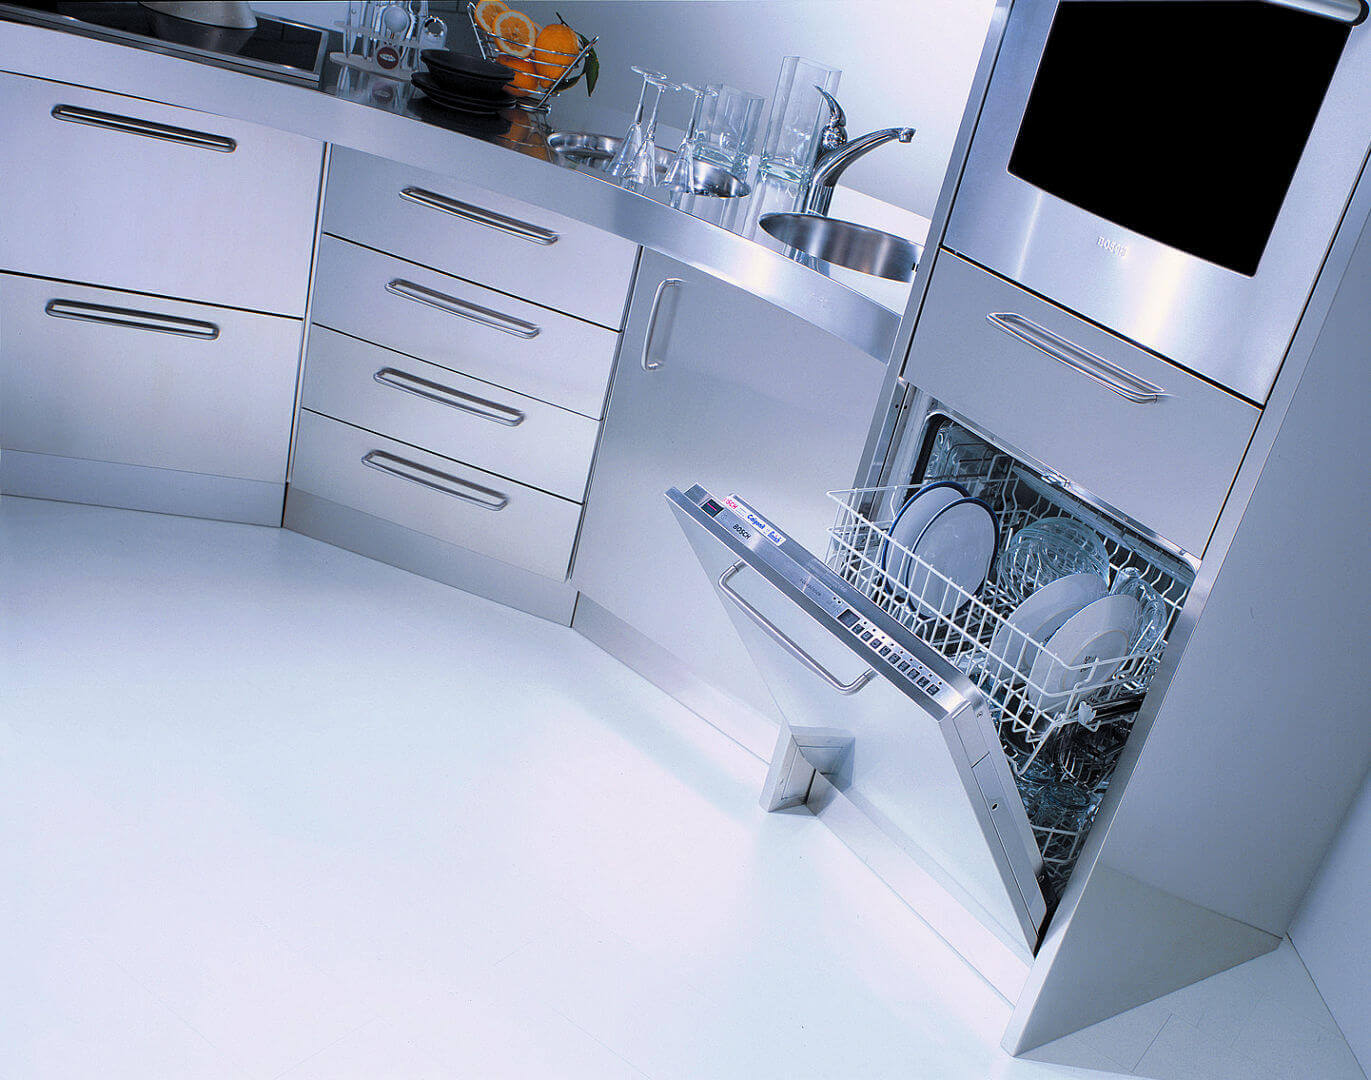 Arca Cucine Italy - Domestic stainless steel kitchens - Venus - Dishwasher and Oven